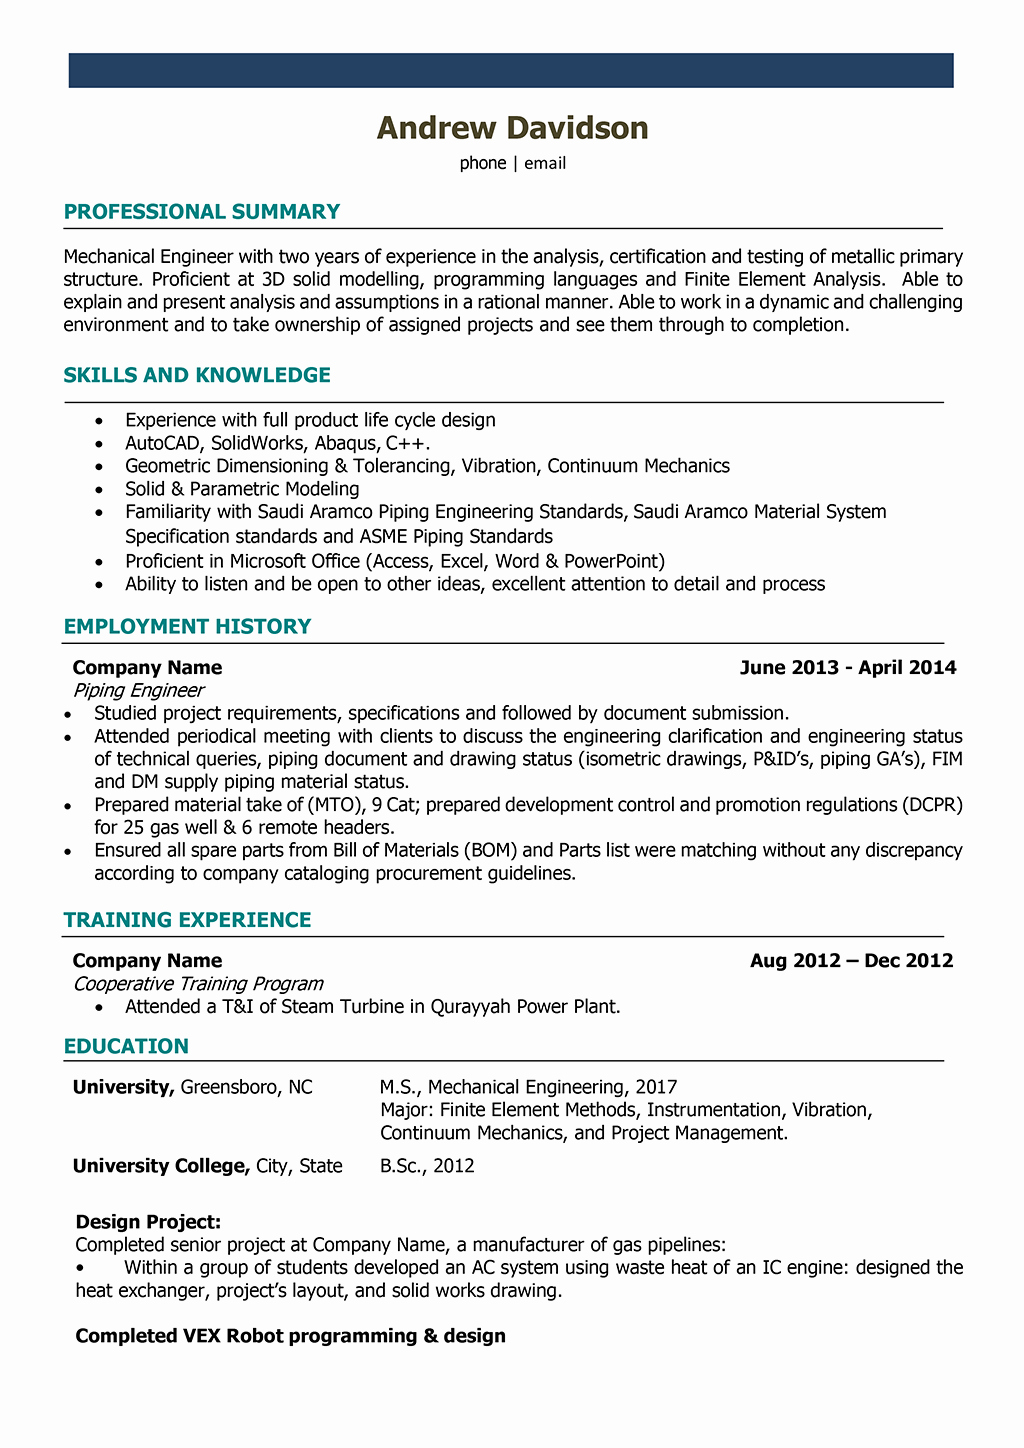 Mechanical Engineer Resume Sample Elegant Mechanical Engineer Resume Samples and Writing Guide